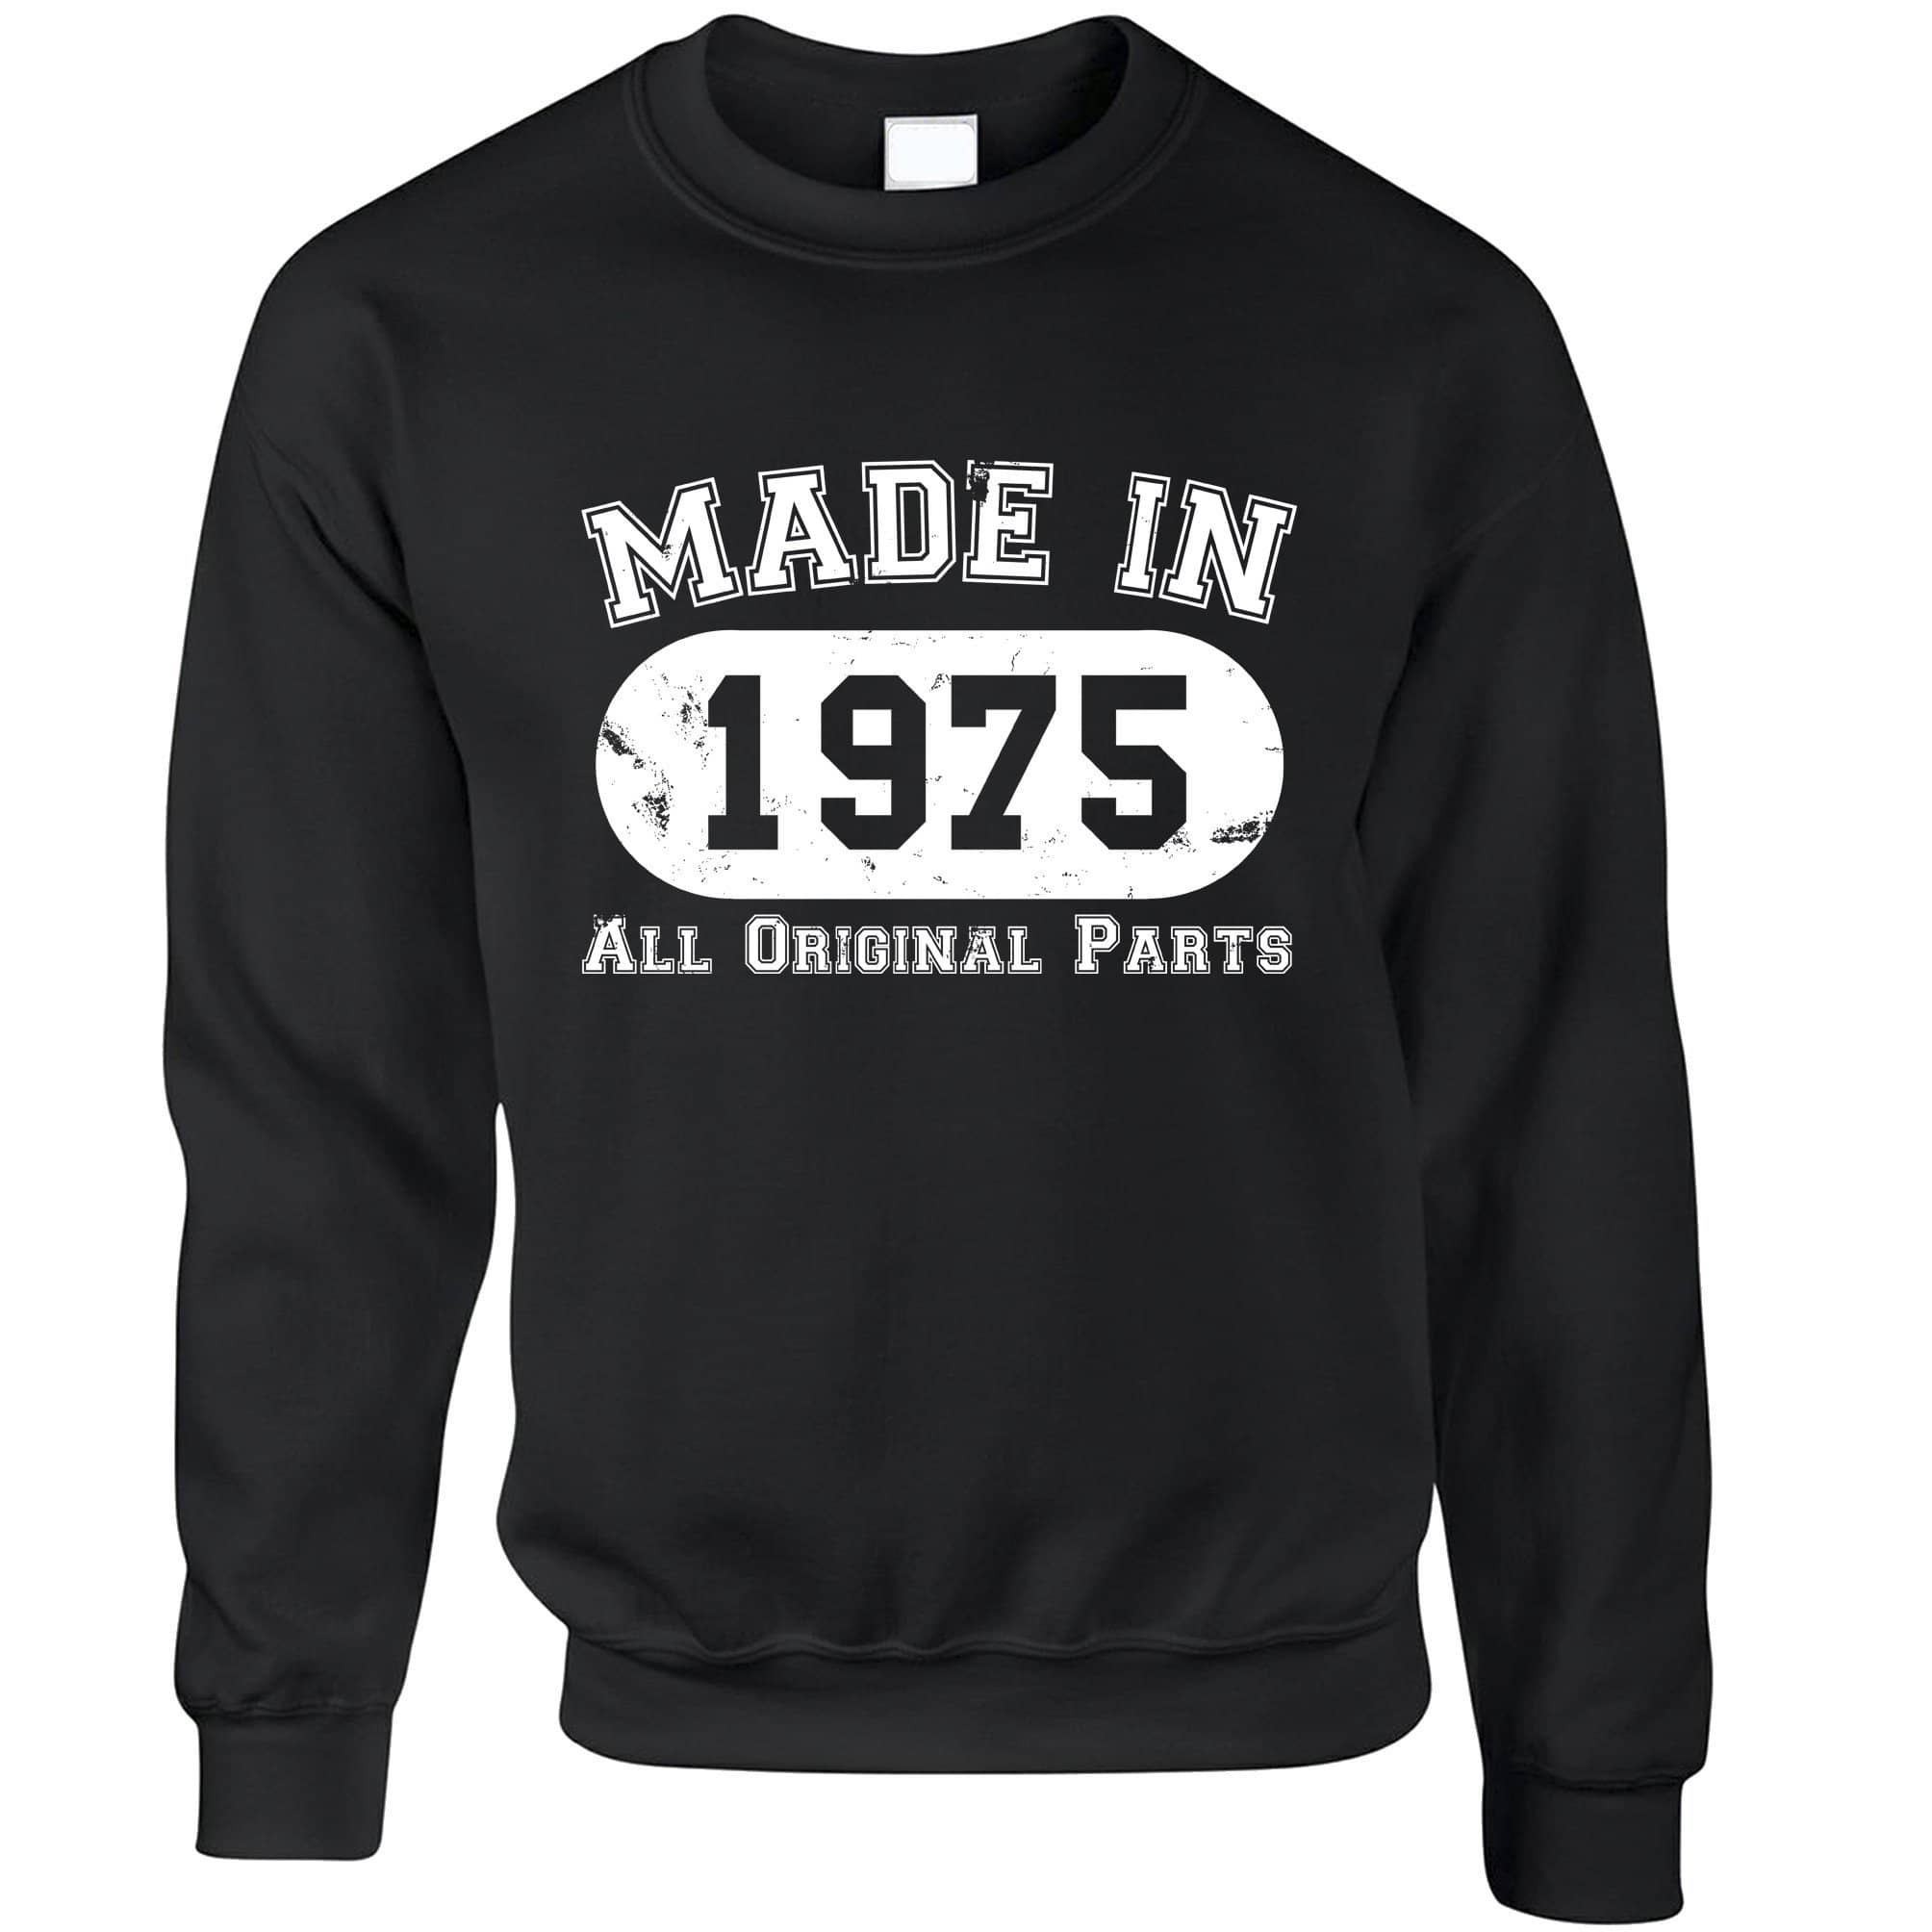 Made in 1975 All Original Parts Sweatshirt Jumper [Distressed]